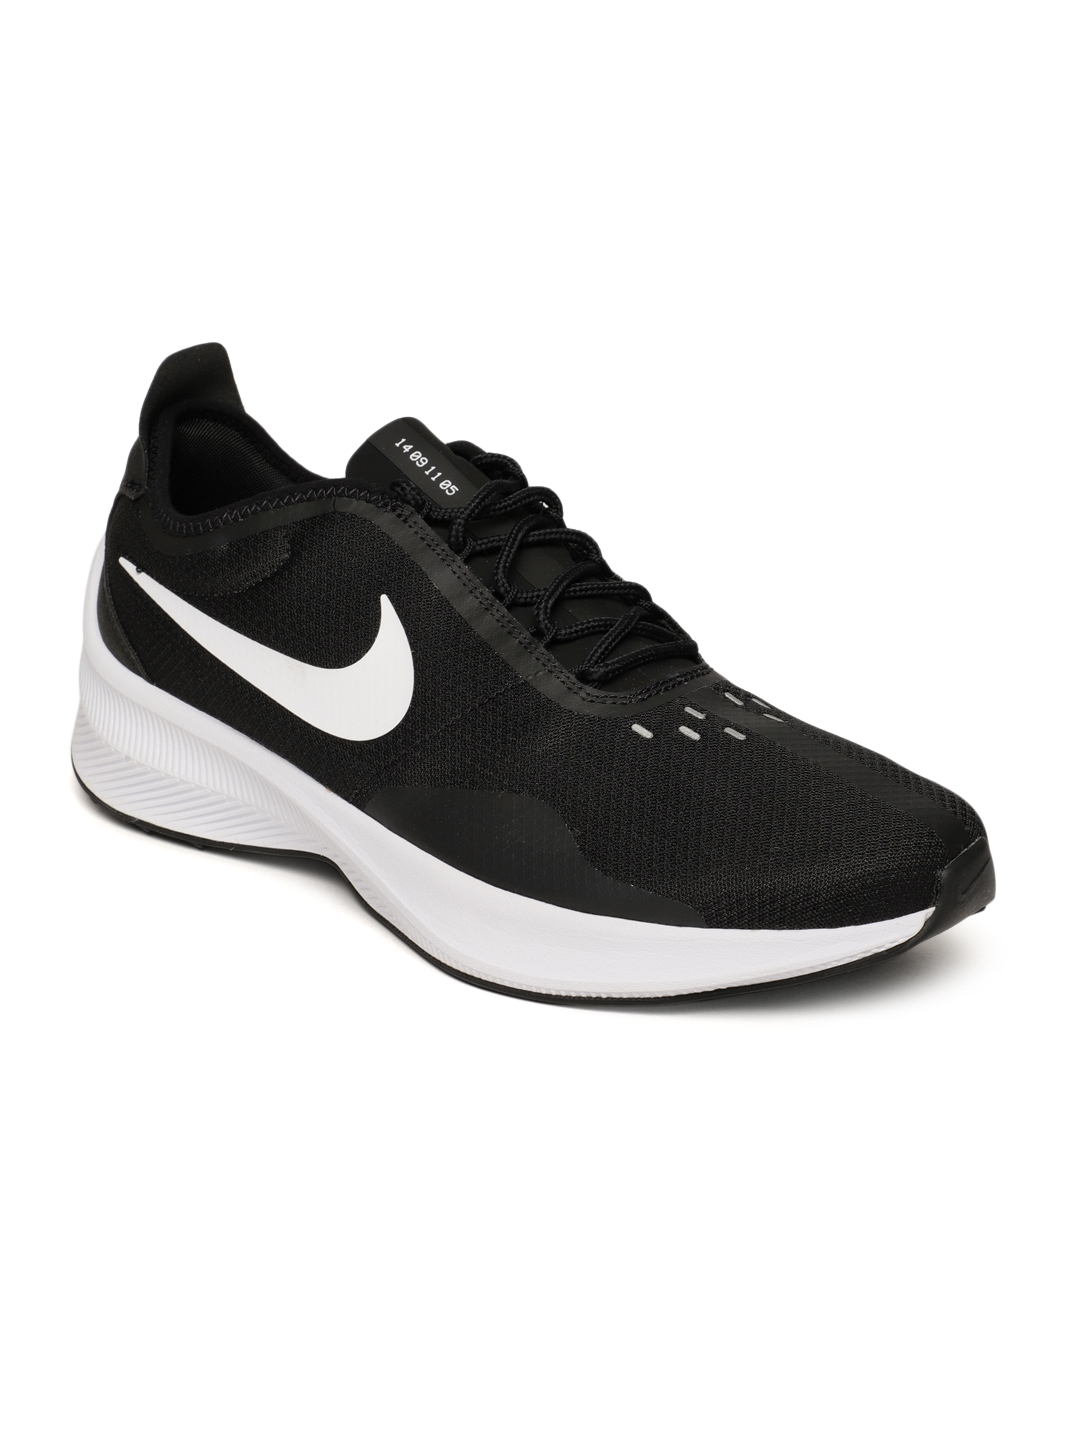 1e6a67dcbeb1 Buy Nike Men Black EXP Z07 Casual Shoes - Casual Shoes for Men ...